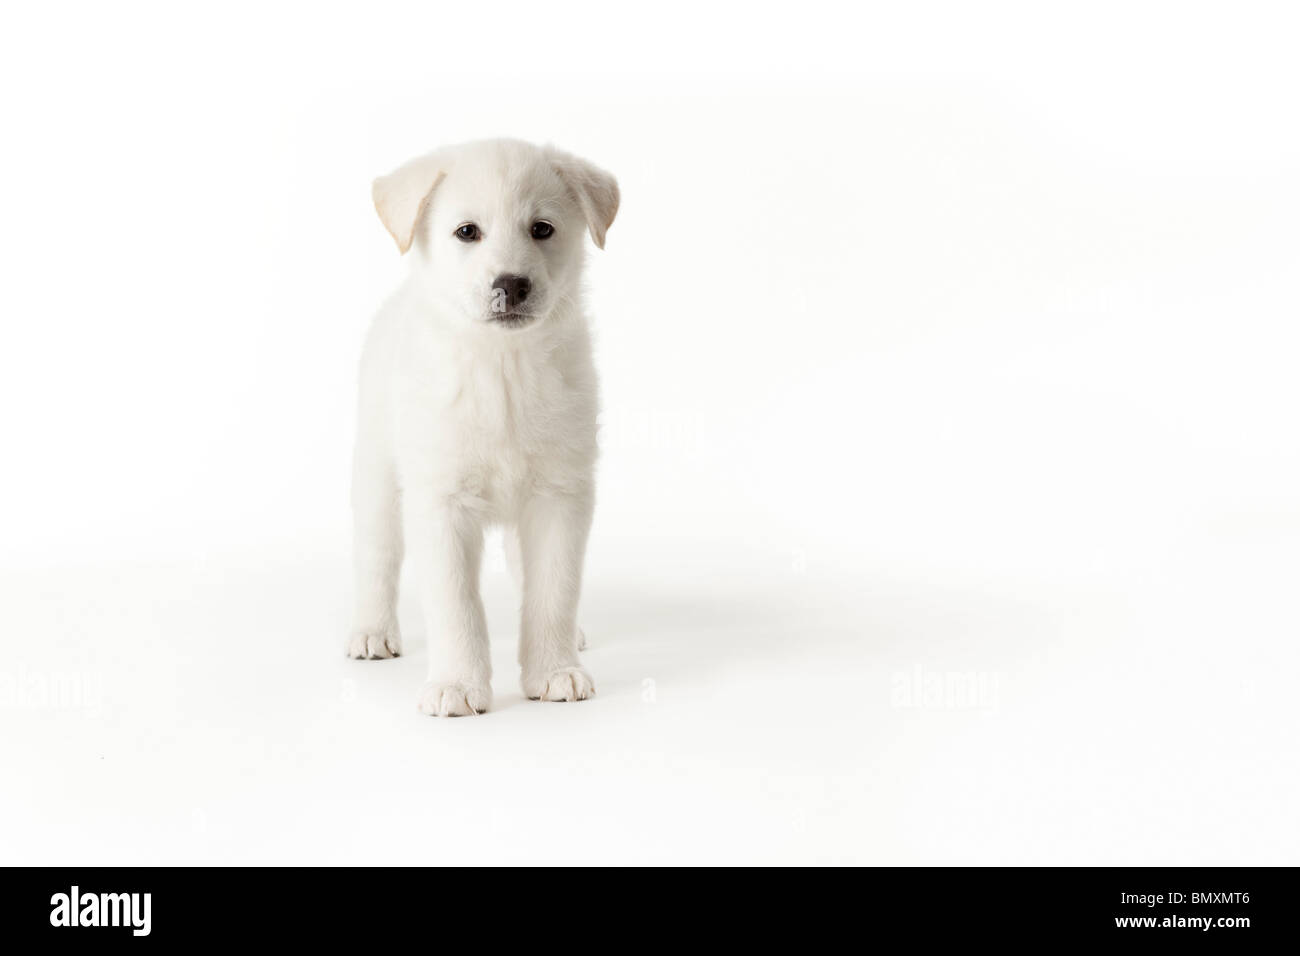 Cute white puppy standing on white background Stock Photo